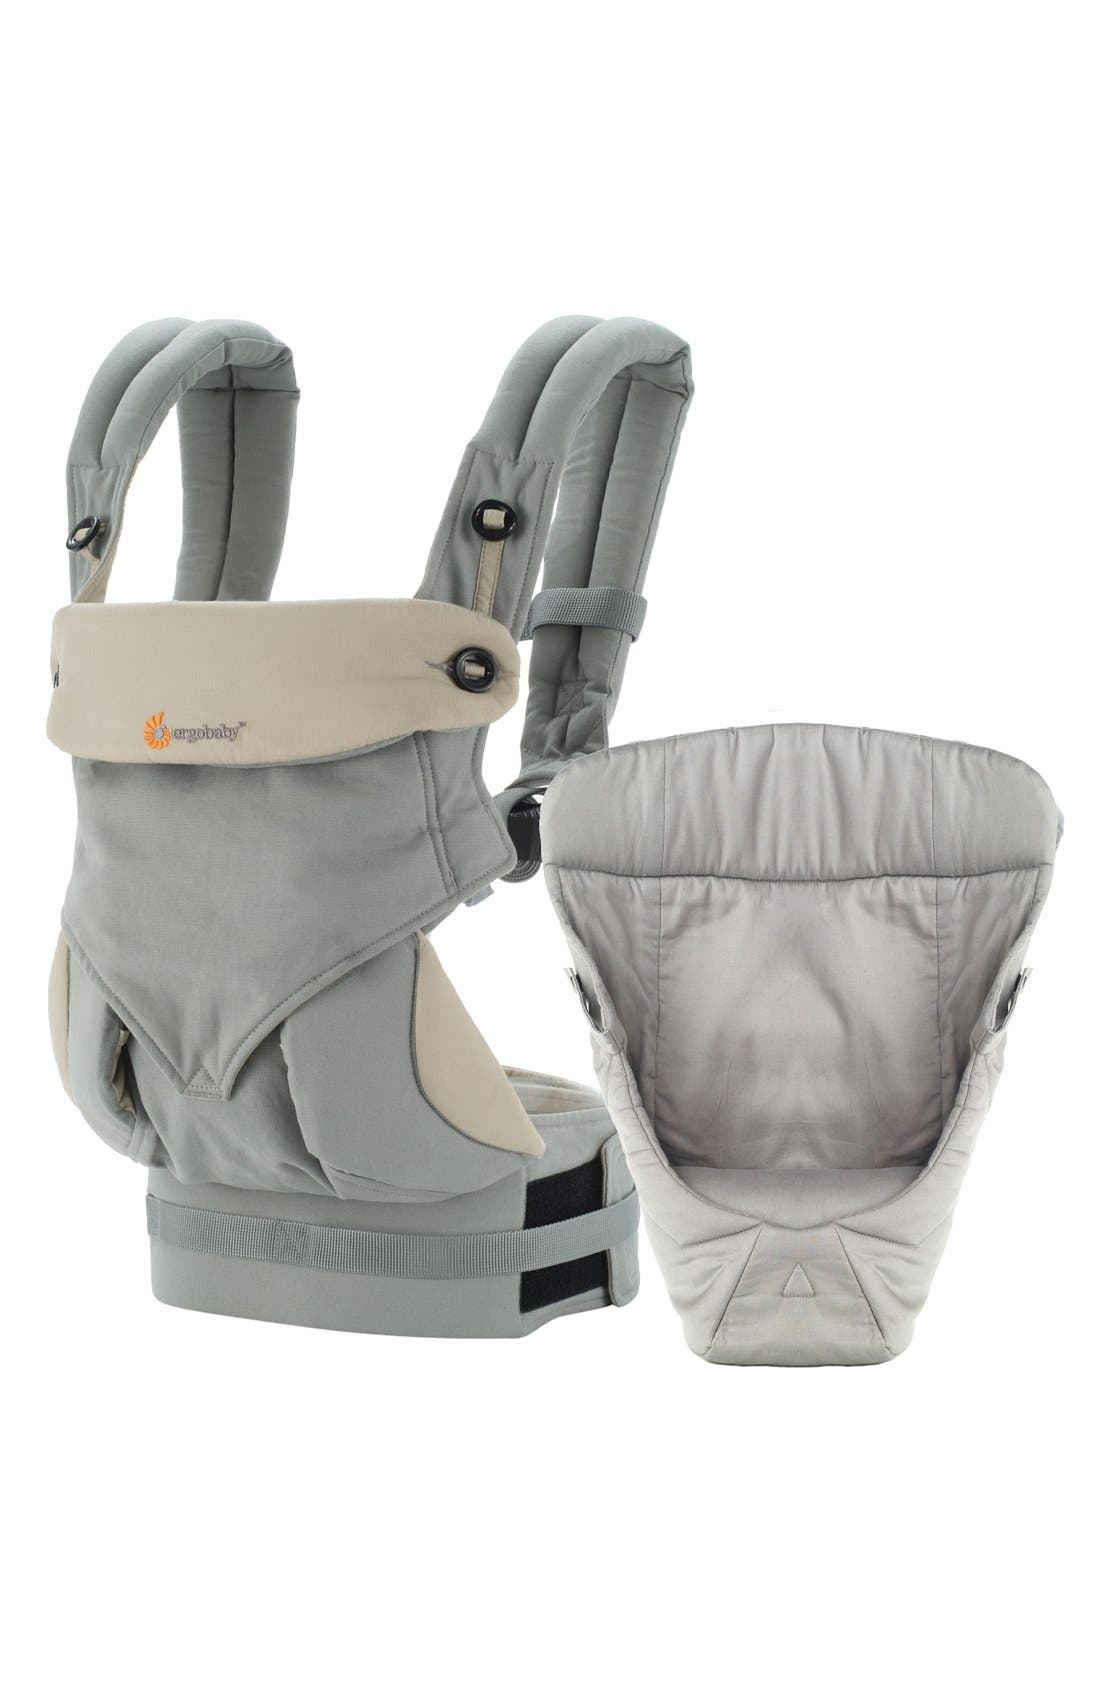 ERGObaby 'Four Position 360 - Bundle of Joy' Baby Carrier & Infant Insert